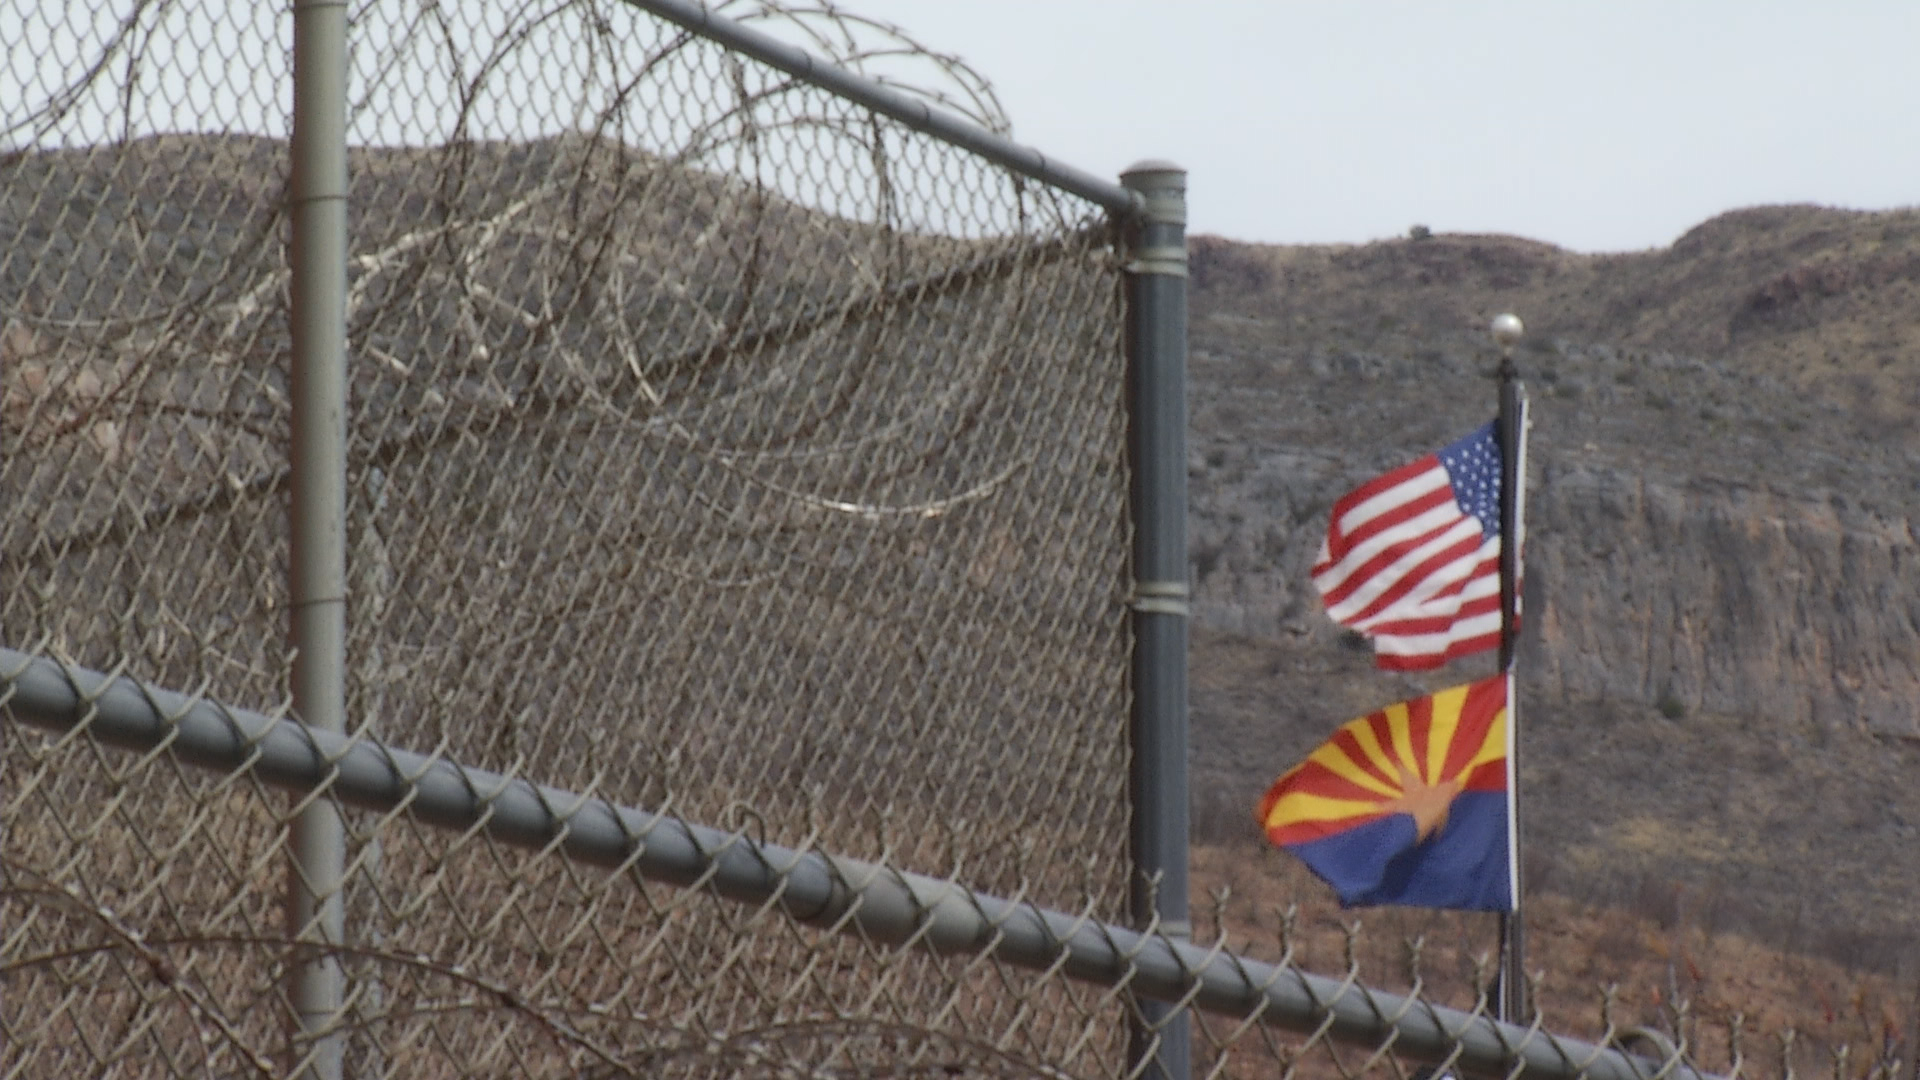 Flags for Arizona and the United States wave in the wind outside the Cochise County Jail.